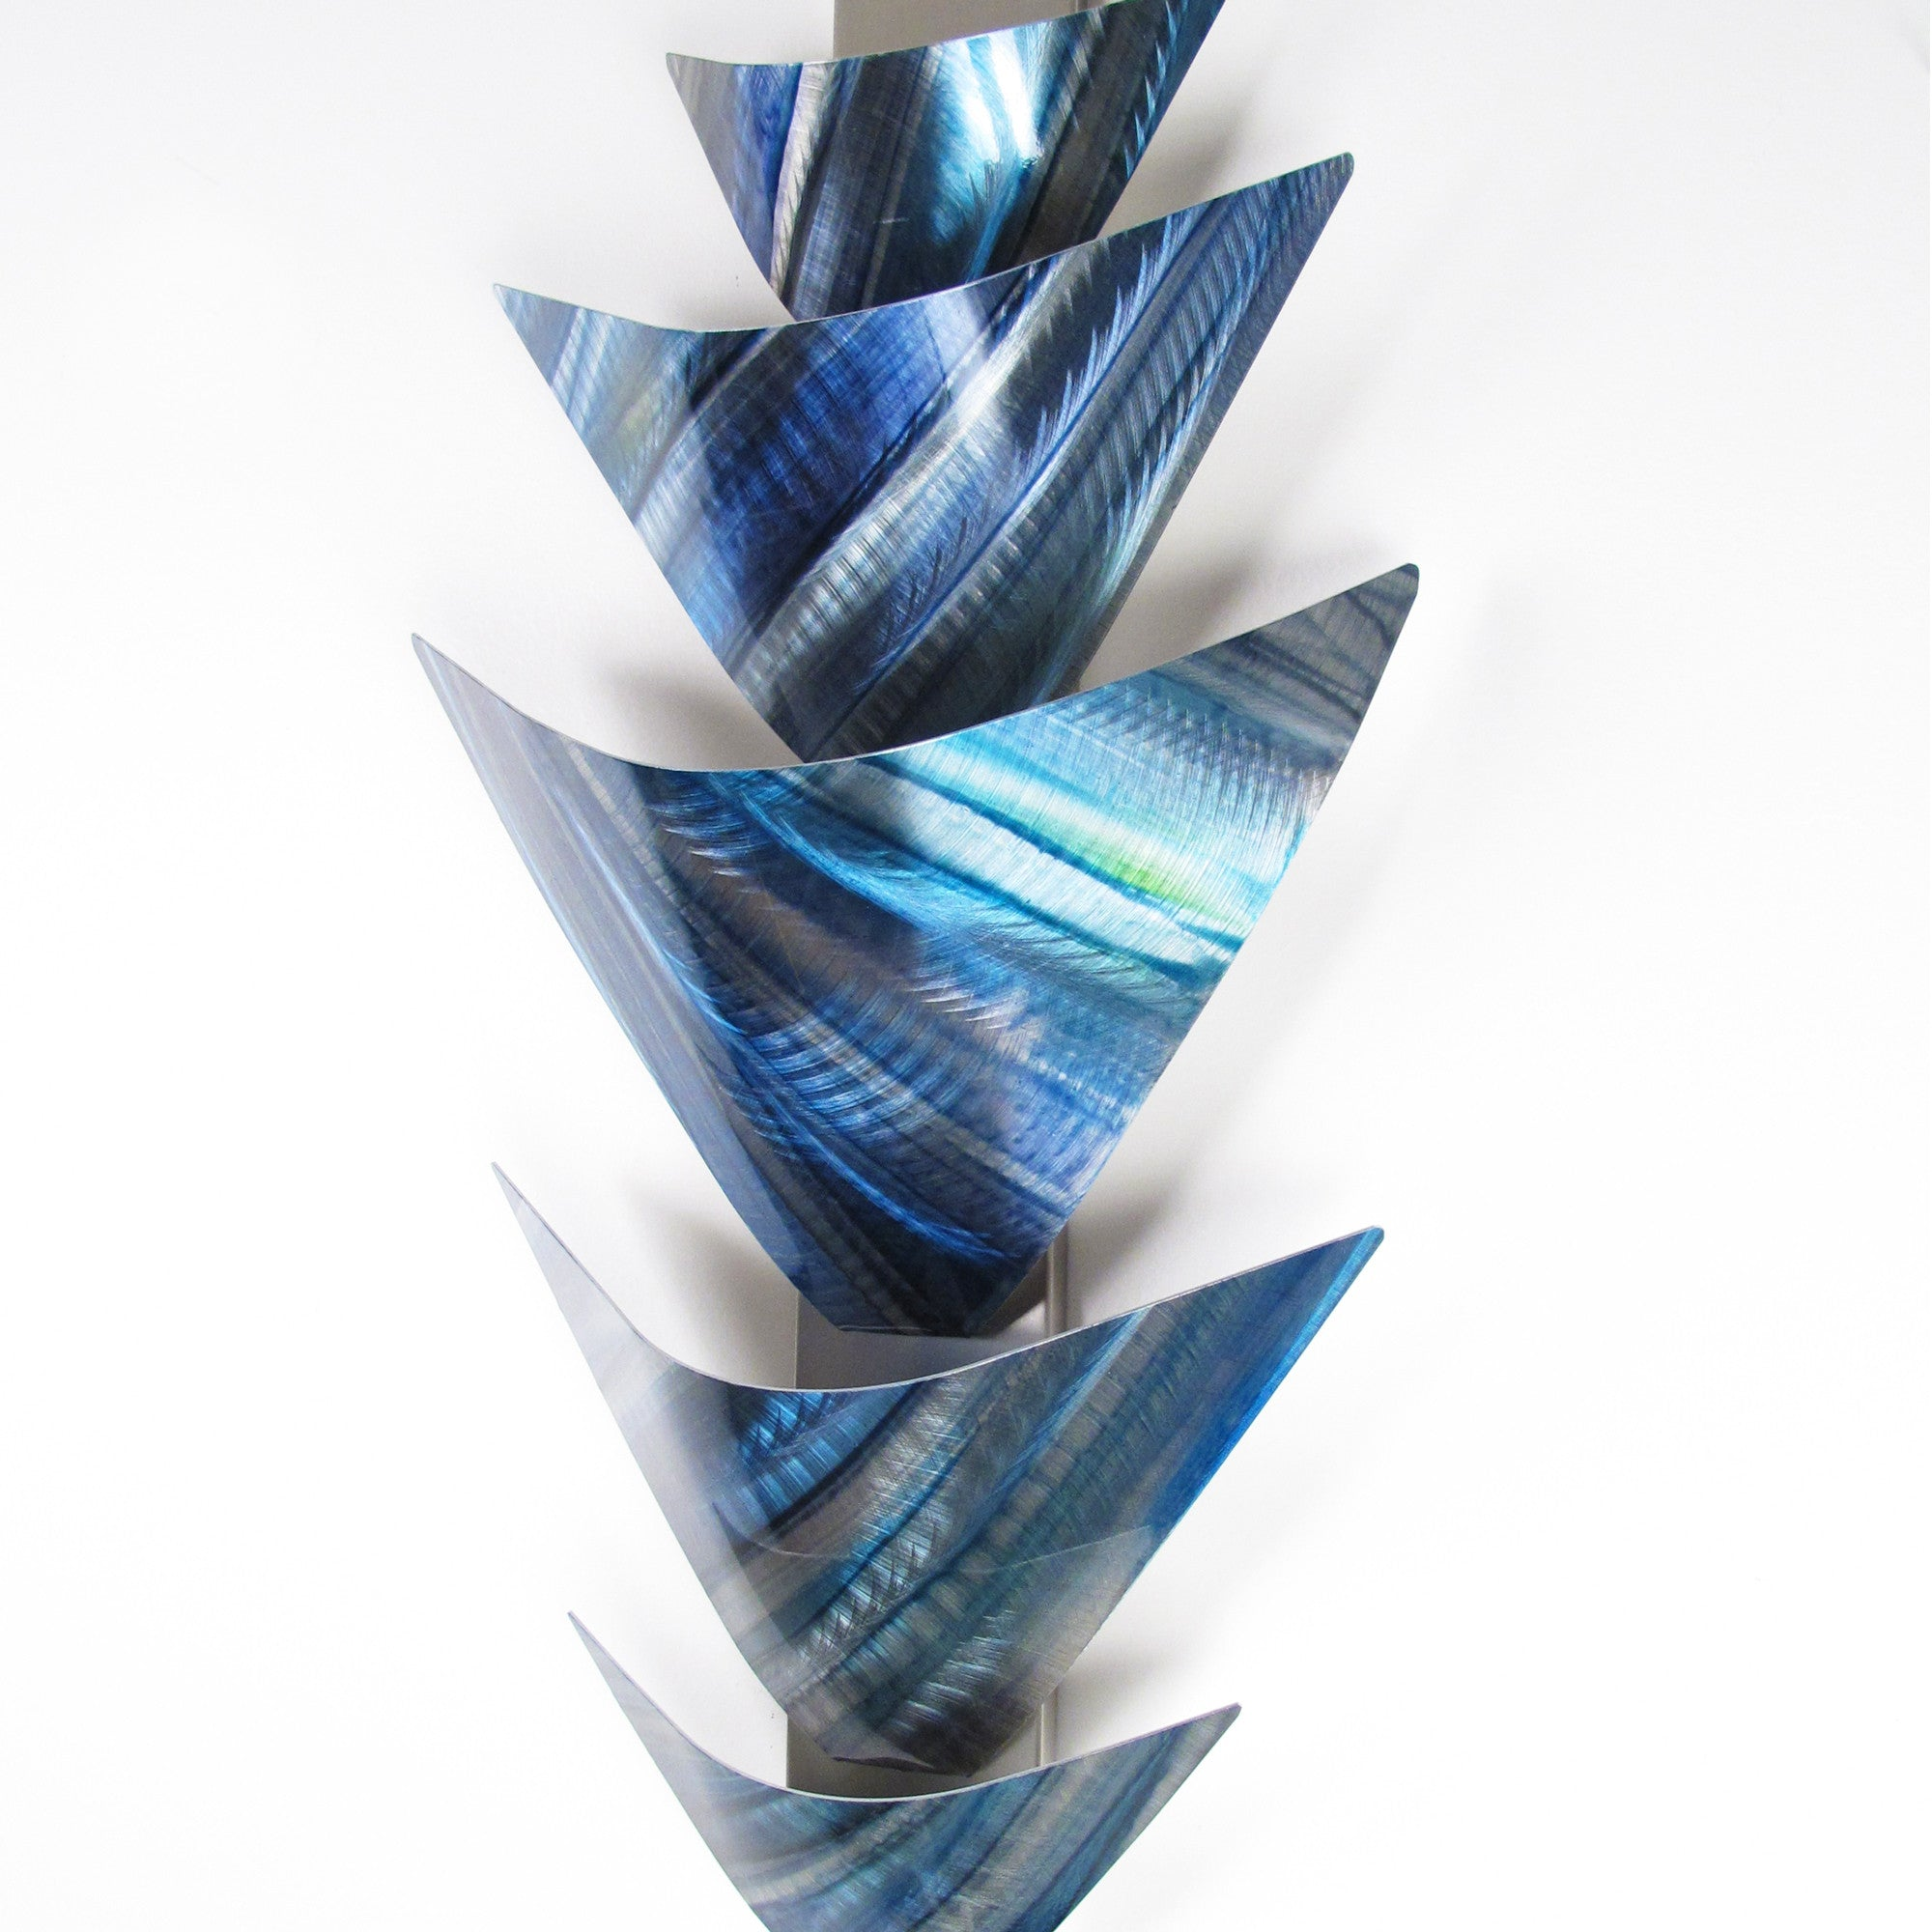 "Blue Metal Wall Art Delectable Aurora Torchiere Series"" 40""x24"" Modern Abstract Metal Wall Art Design Inspiration"